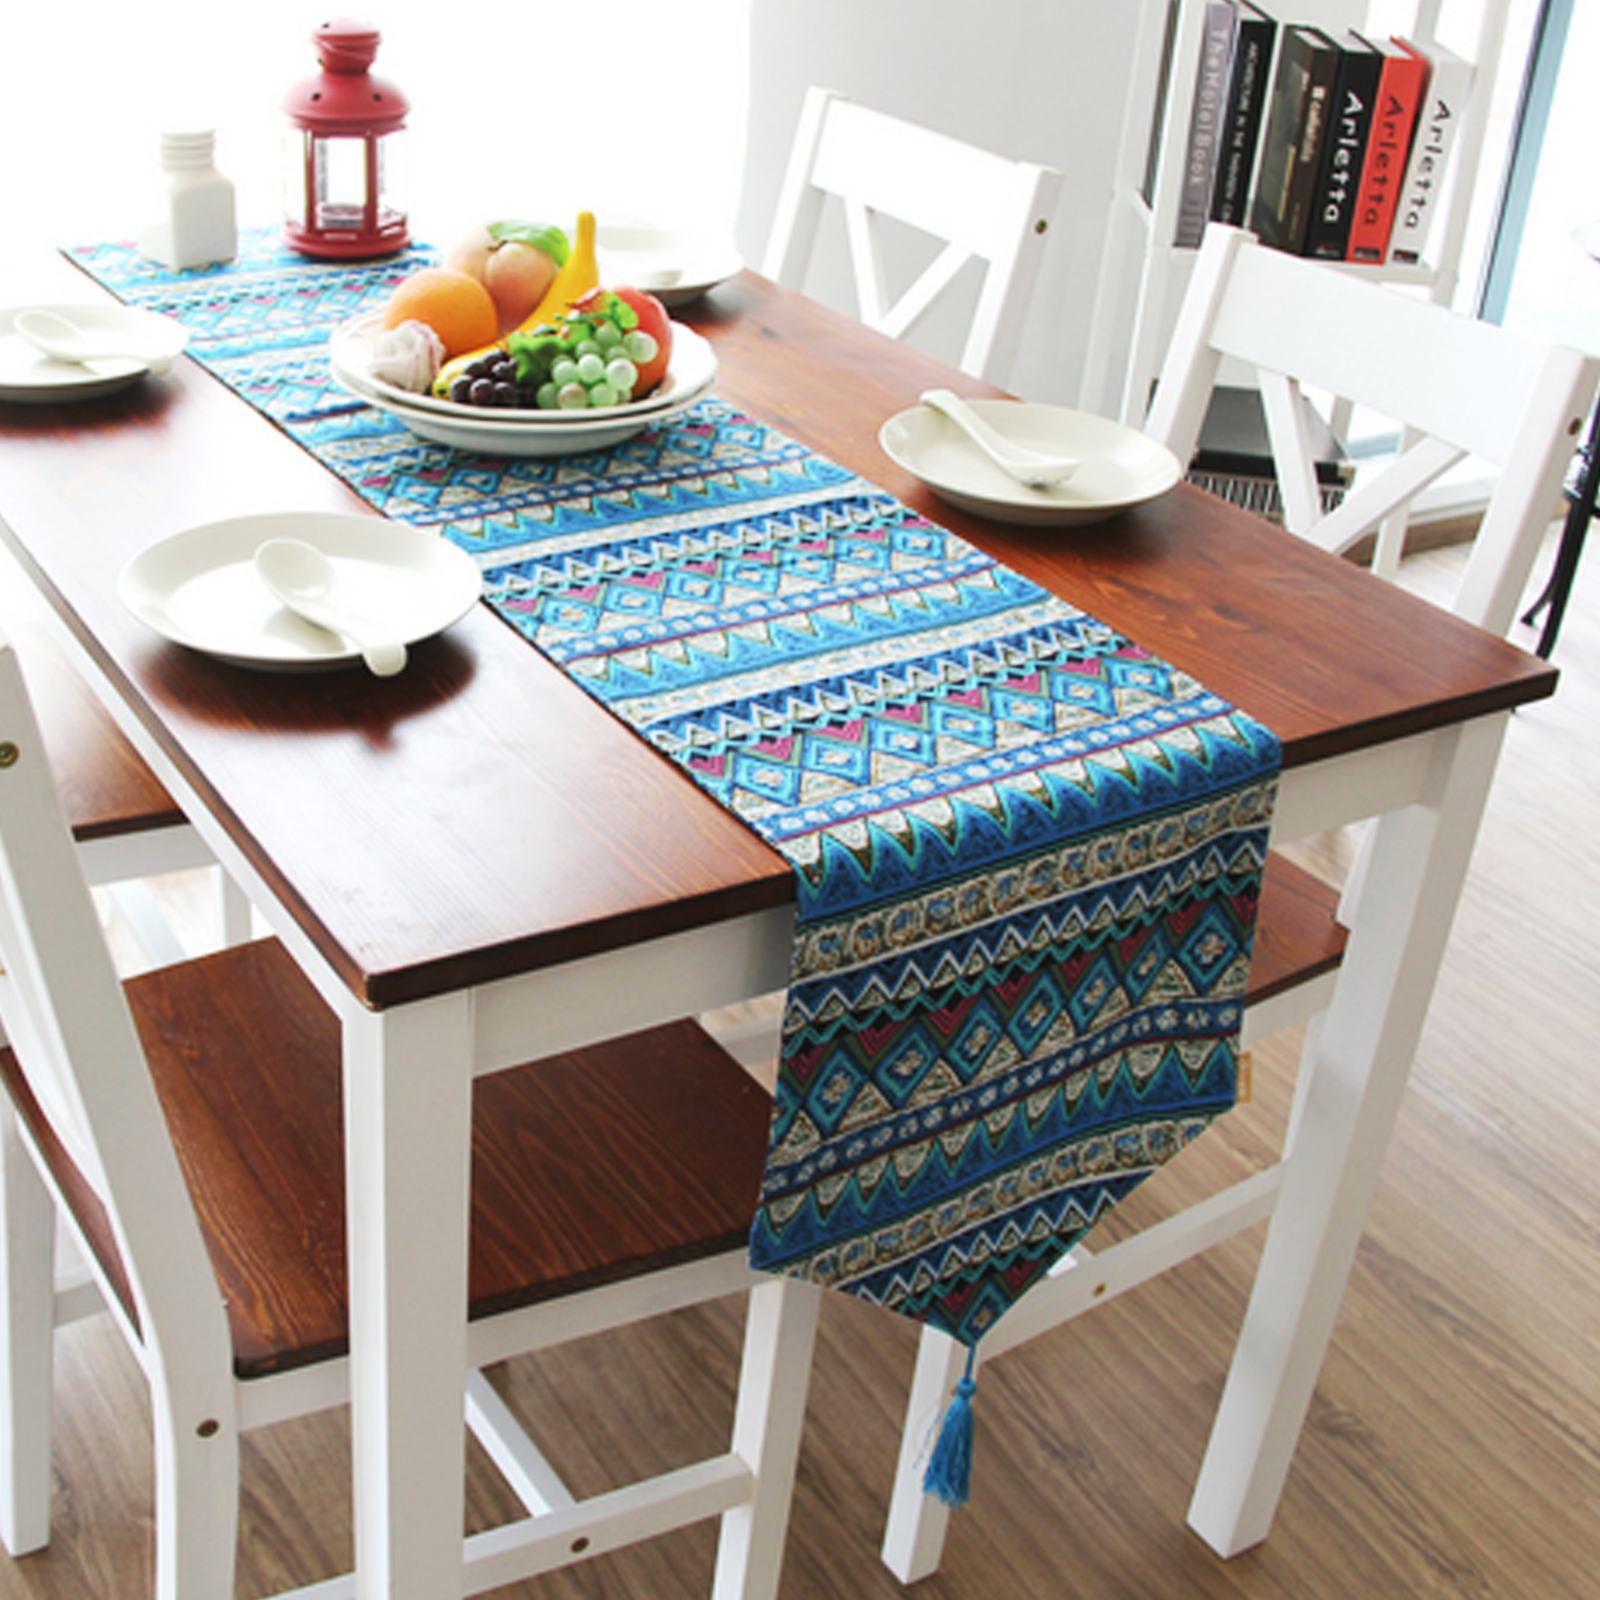 30x180cm Asia Cotton Tassels Table Runner Table Cloth Dining Table Mat Coffee Pads Home Decoration Table Cover Home Textile Buy At The Price Of 10 91 In Aliexpress Com Imall Com